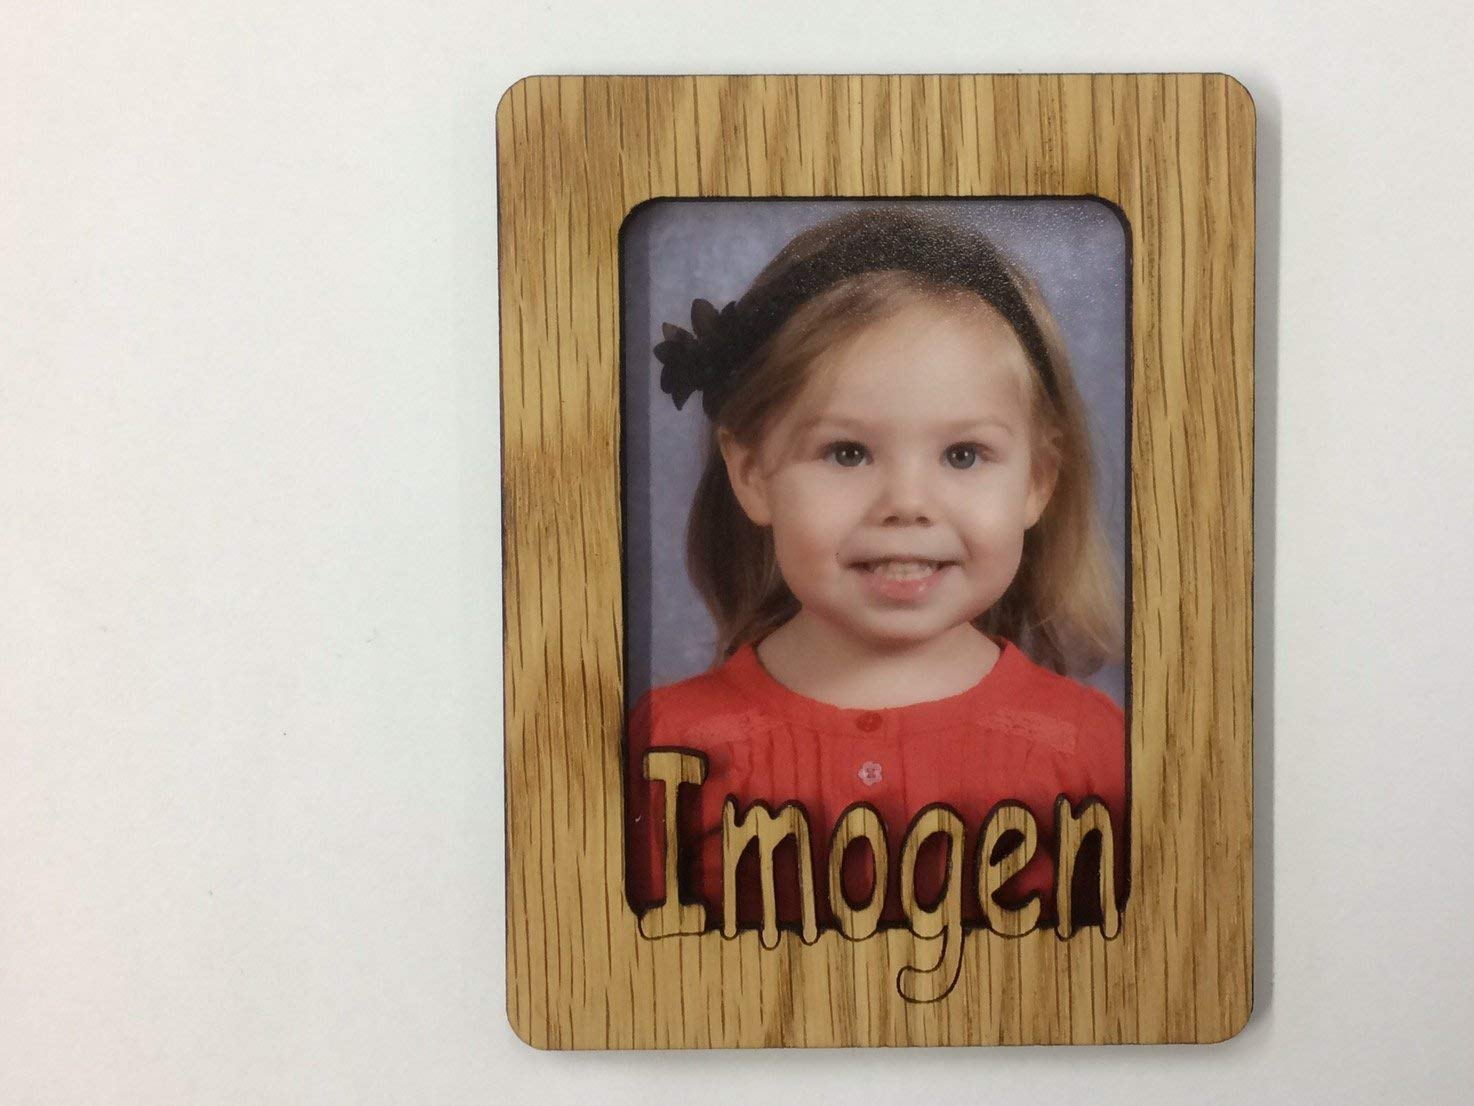 Personalized Wood Name Picture Frame Refrigerator Magnet - Holds Wallet Sized Photo by Legacy Images